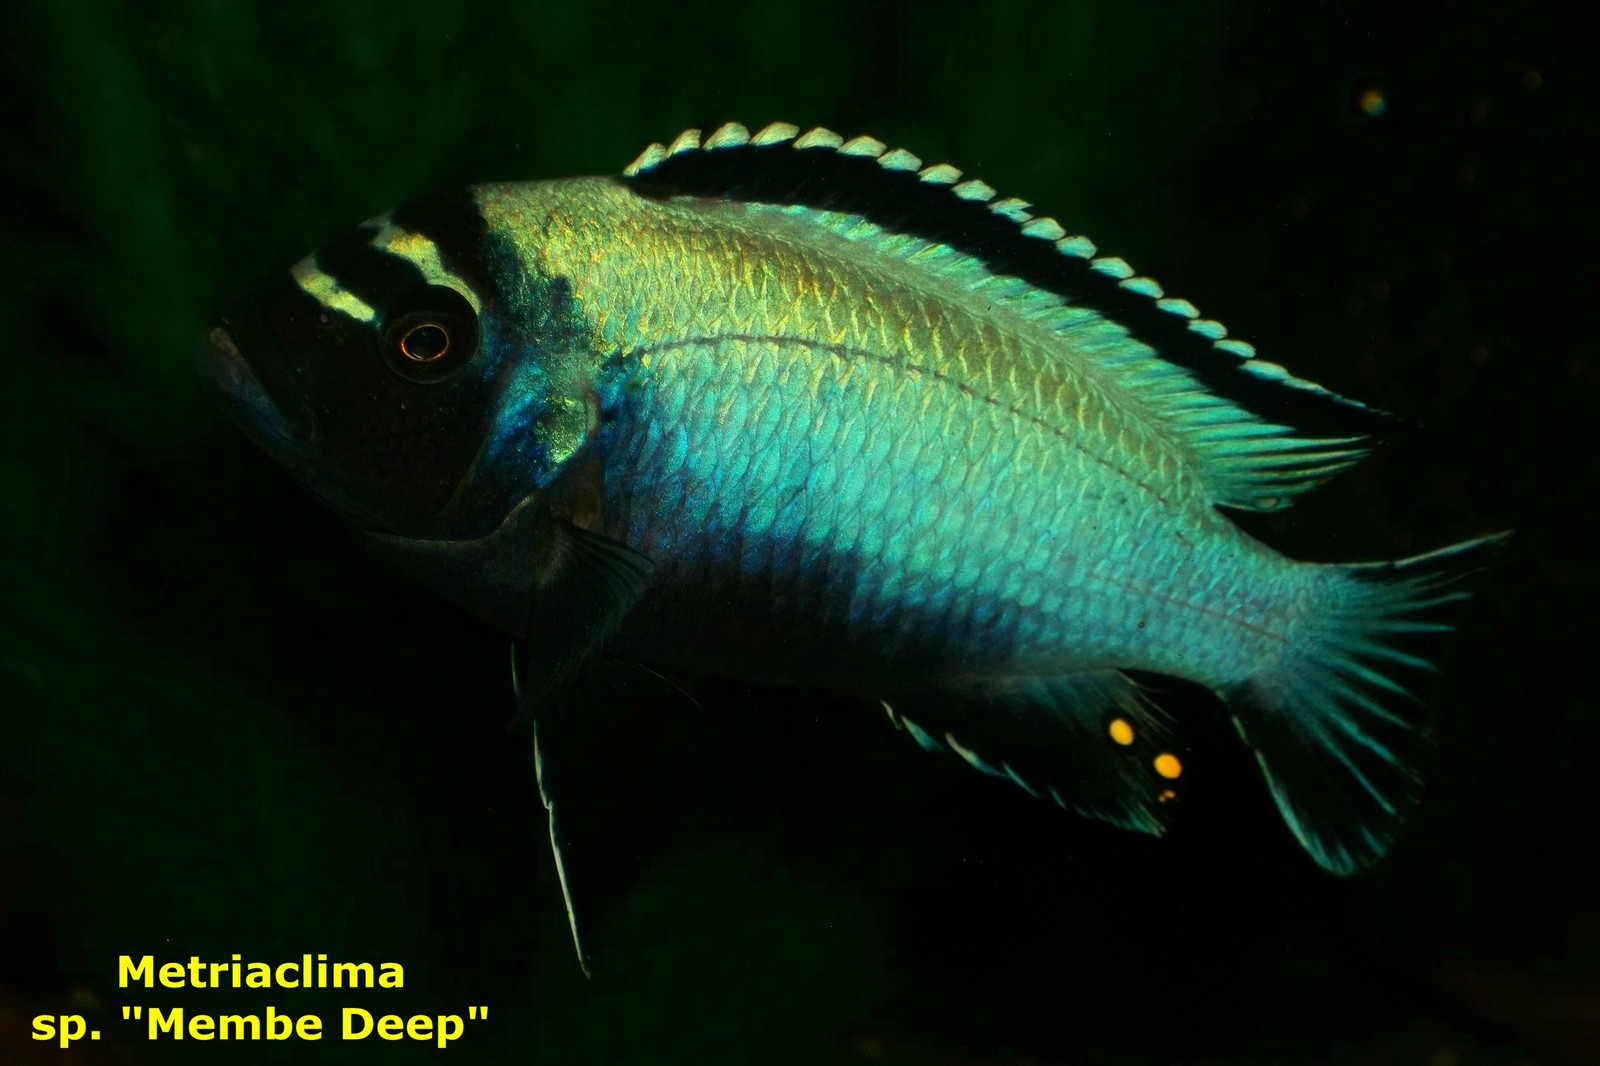 "Metriaclima sp ""membe deep"" 